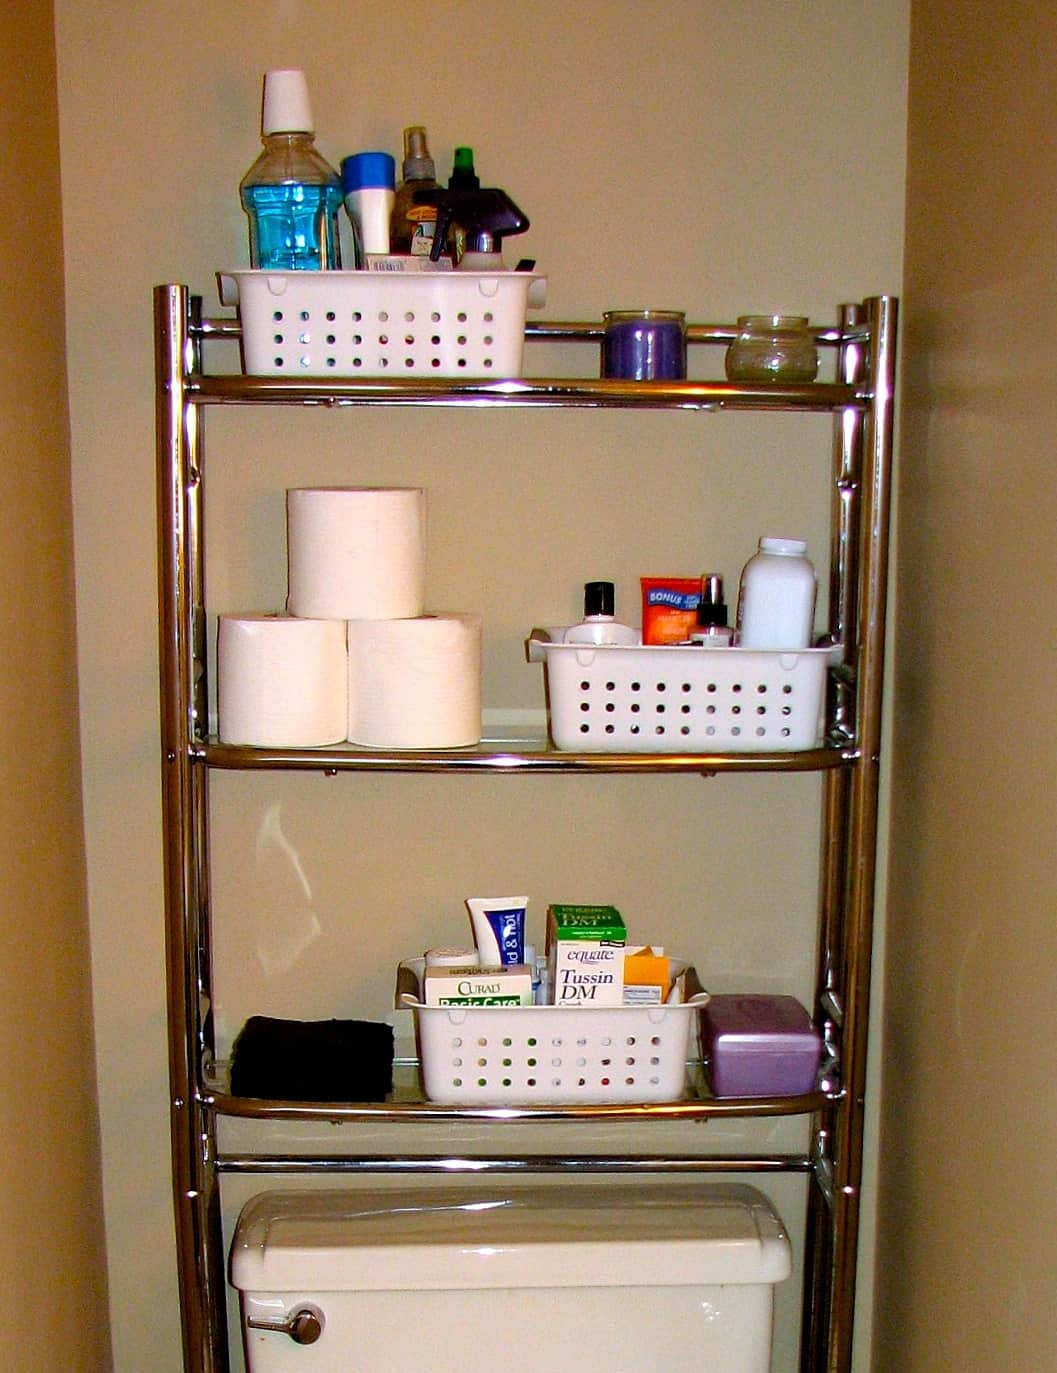 Diy storage ideas for small apartments for Bathroom shelving ideas for small spaces